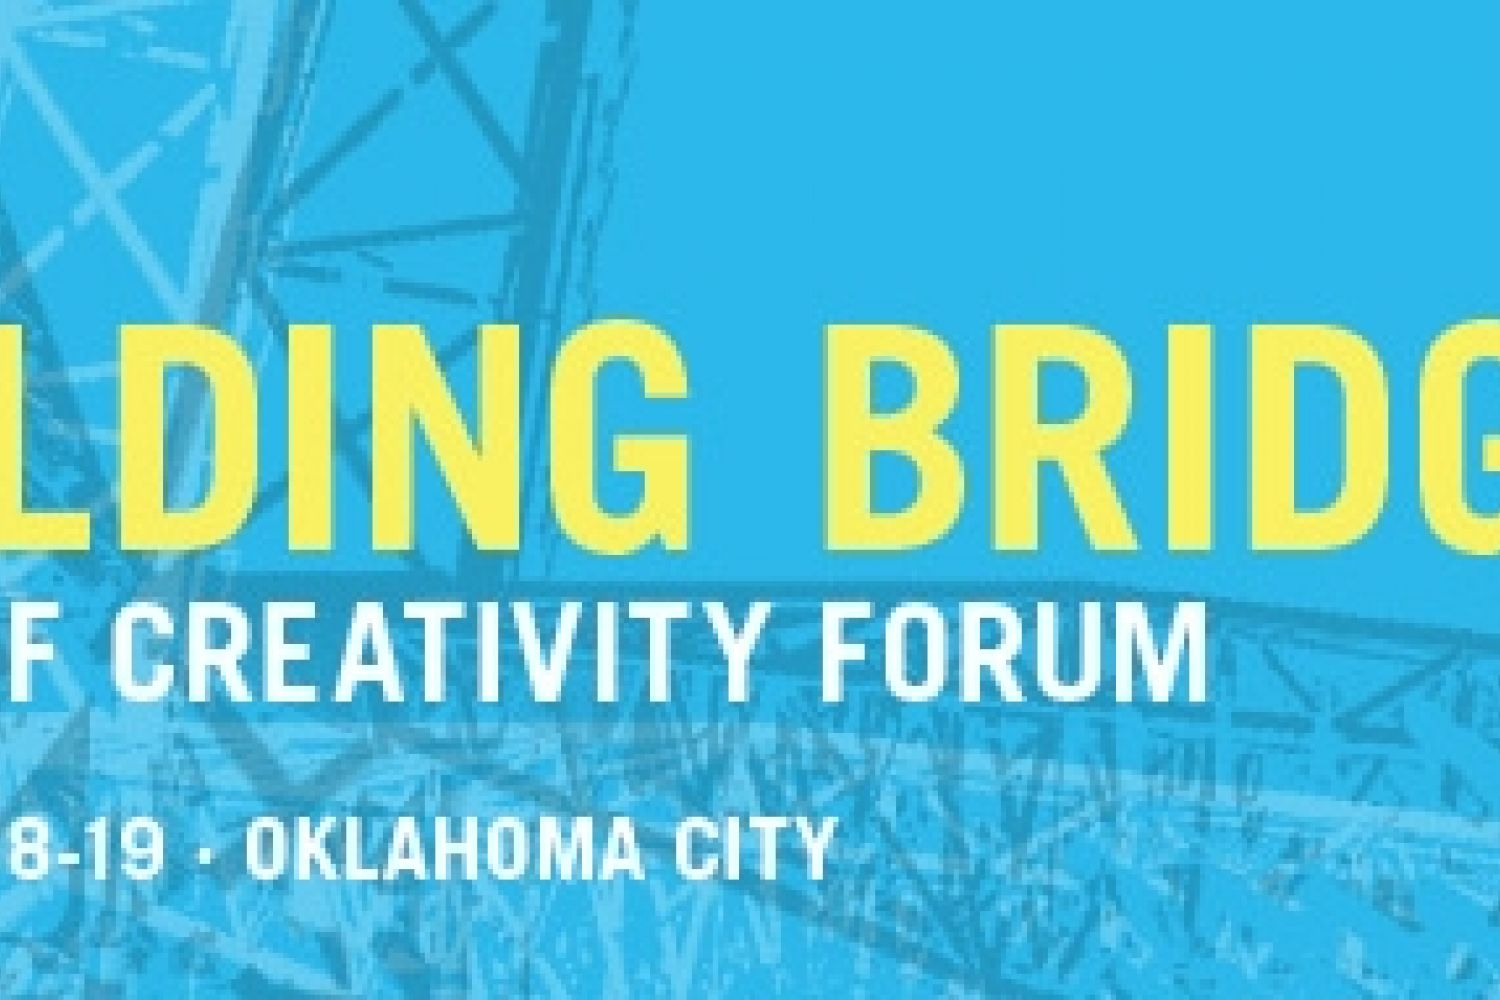 State of Creativity Forum to be held in Oklahoma City, November 19th